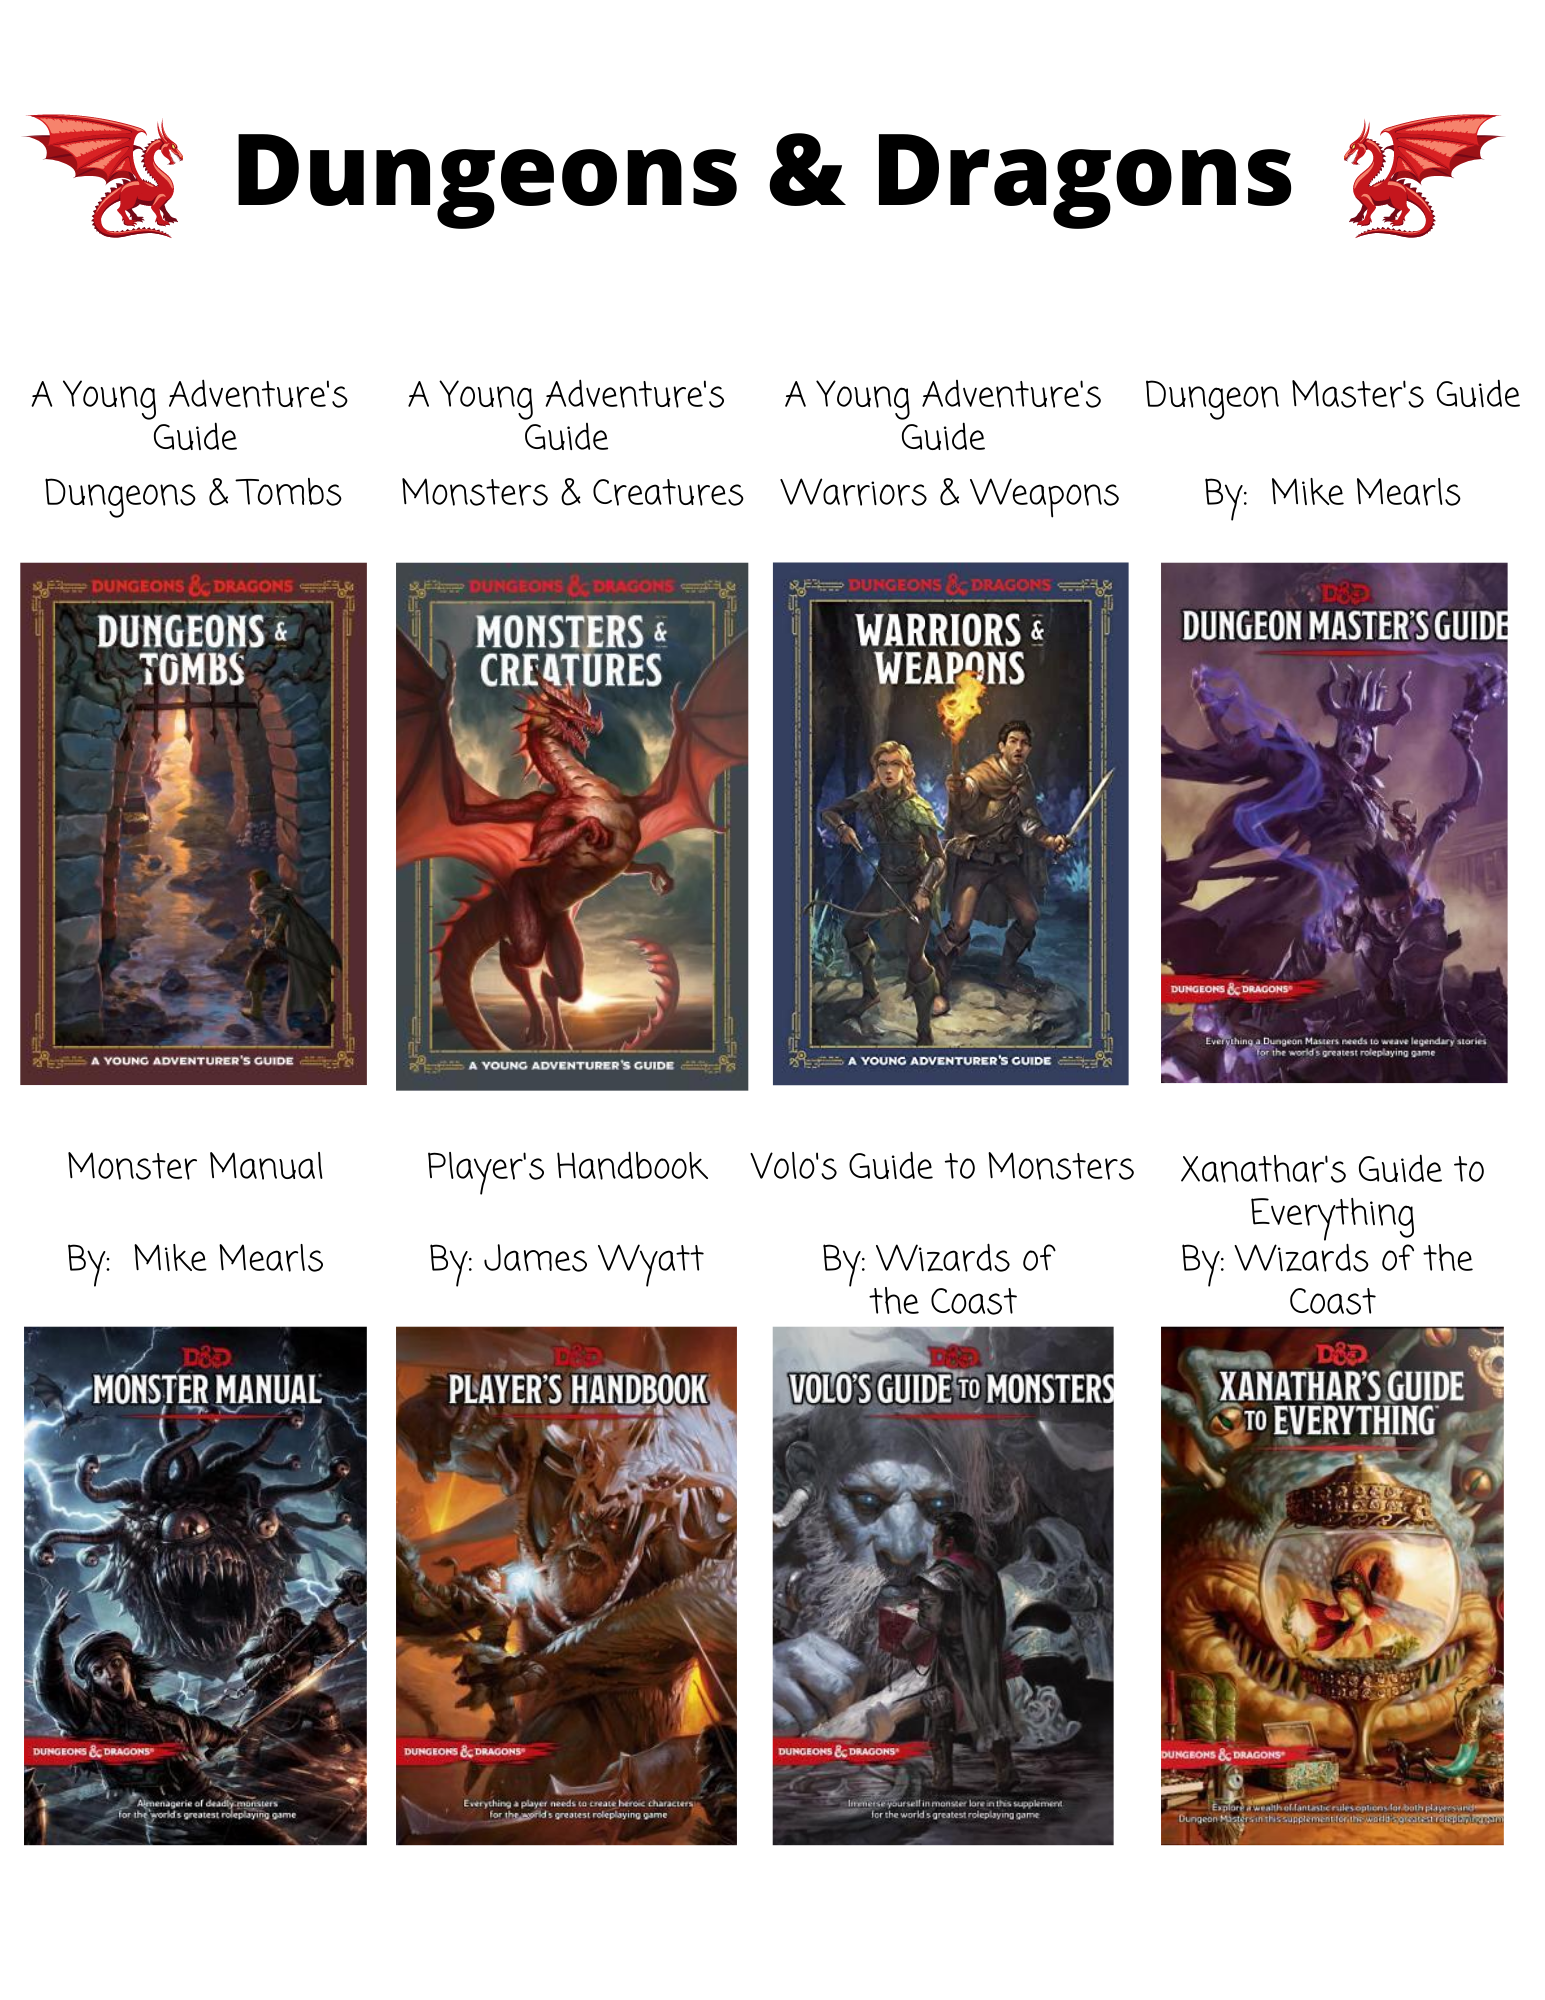 Dungeons & Dragons  A Young Adventure's  Guide  Dungeons & Tombs  A Young Adventure's Guide  Monsters & Creatures  A Young Adventure's Guide  Warriors & Weapons  Dungeon Master's Guide  By: Mike Mearls  Monster Manual  By:  Mike Mearls  Player's Handbook  By: James Wyatt  Volo's Guide to Monsters  By: Wizards of  the Coast  Xanathar's Guide to Everything  By: Wizards of the  Coast  Waterdeep  Dungeon Heist  Waterdeep  Dungeon of the  Mad Mage  Eberron  Rising From the  Last War